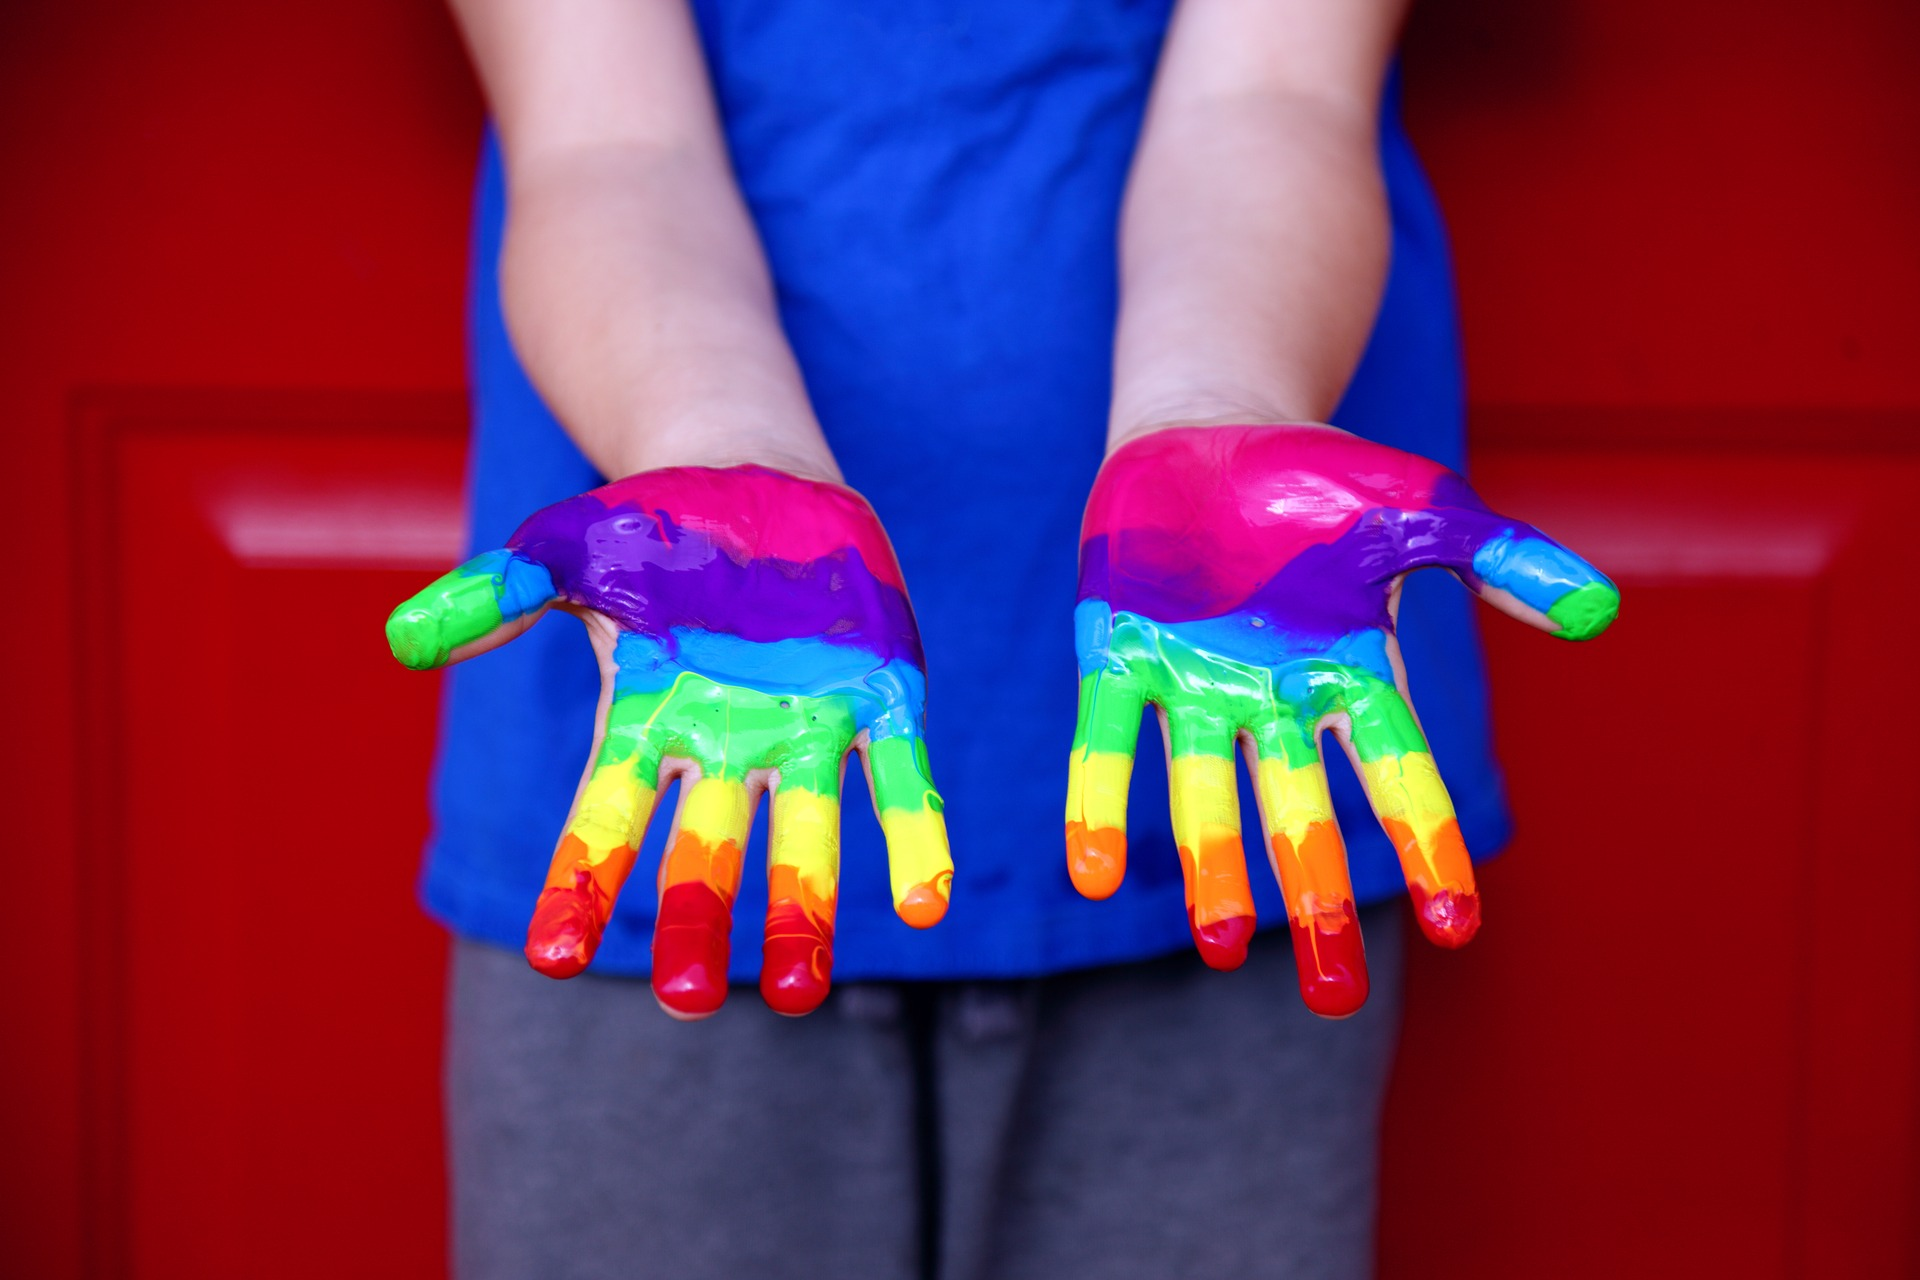 A picture of a pair of hands covered in paint, giving the effect of a rainbow.